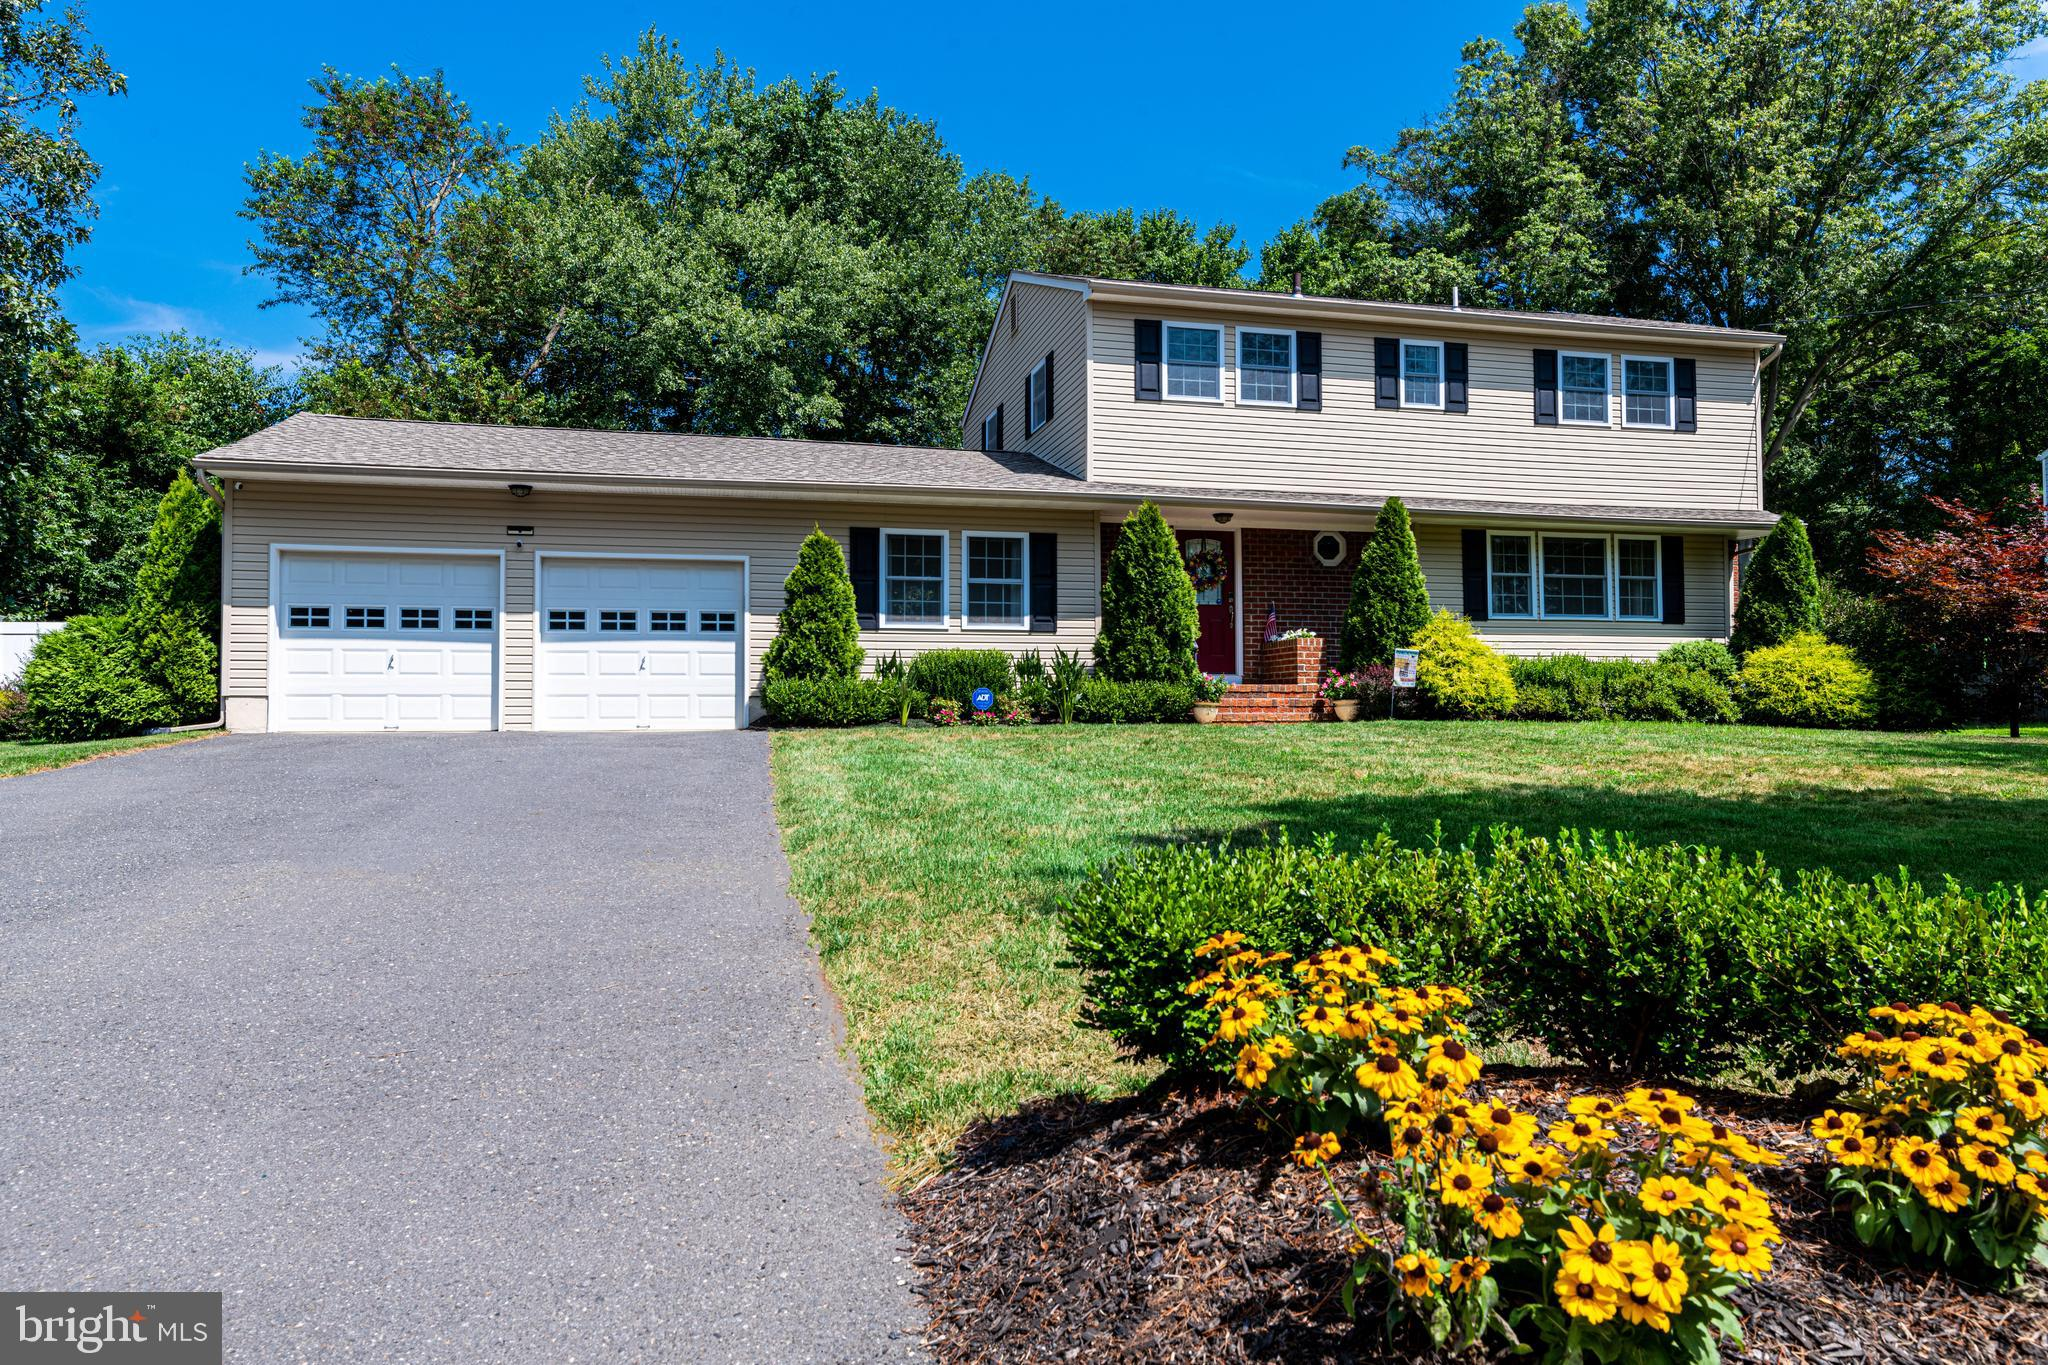 626 DUTCH NECK ROAD, HIGHTSTOWN, NJ 08561